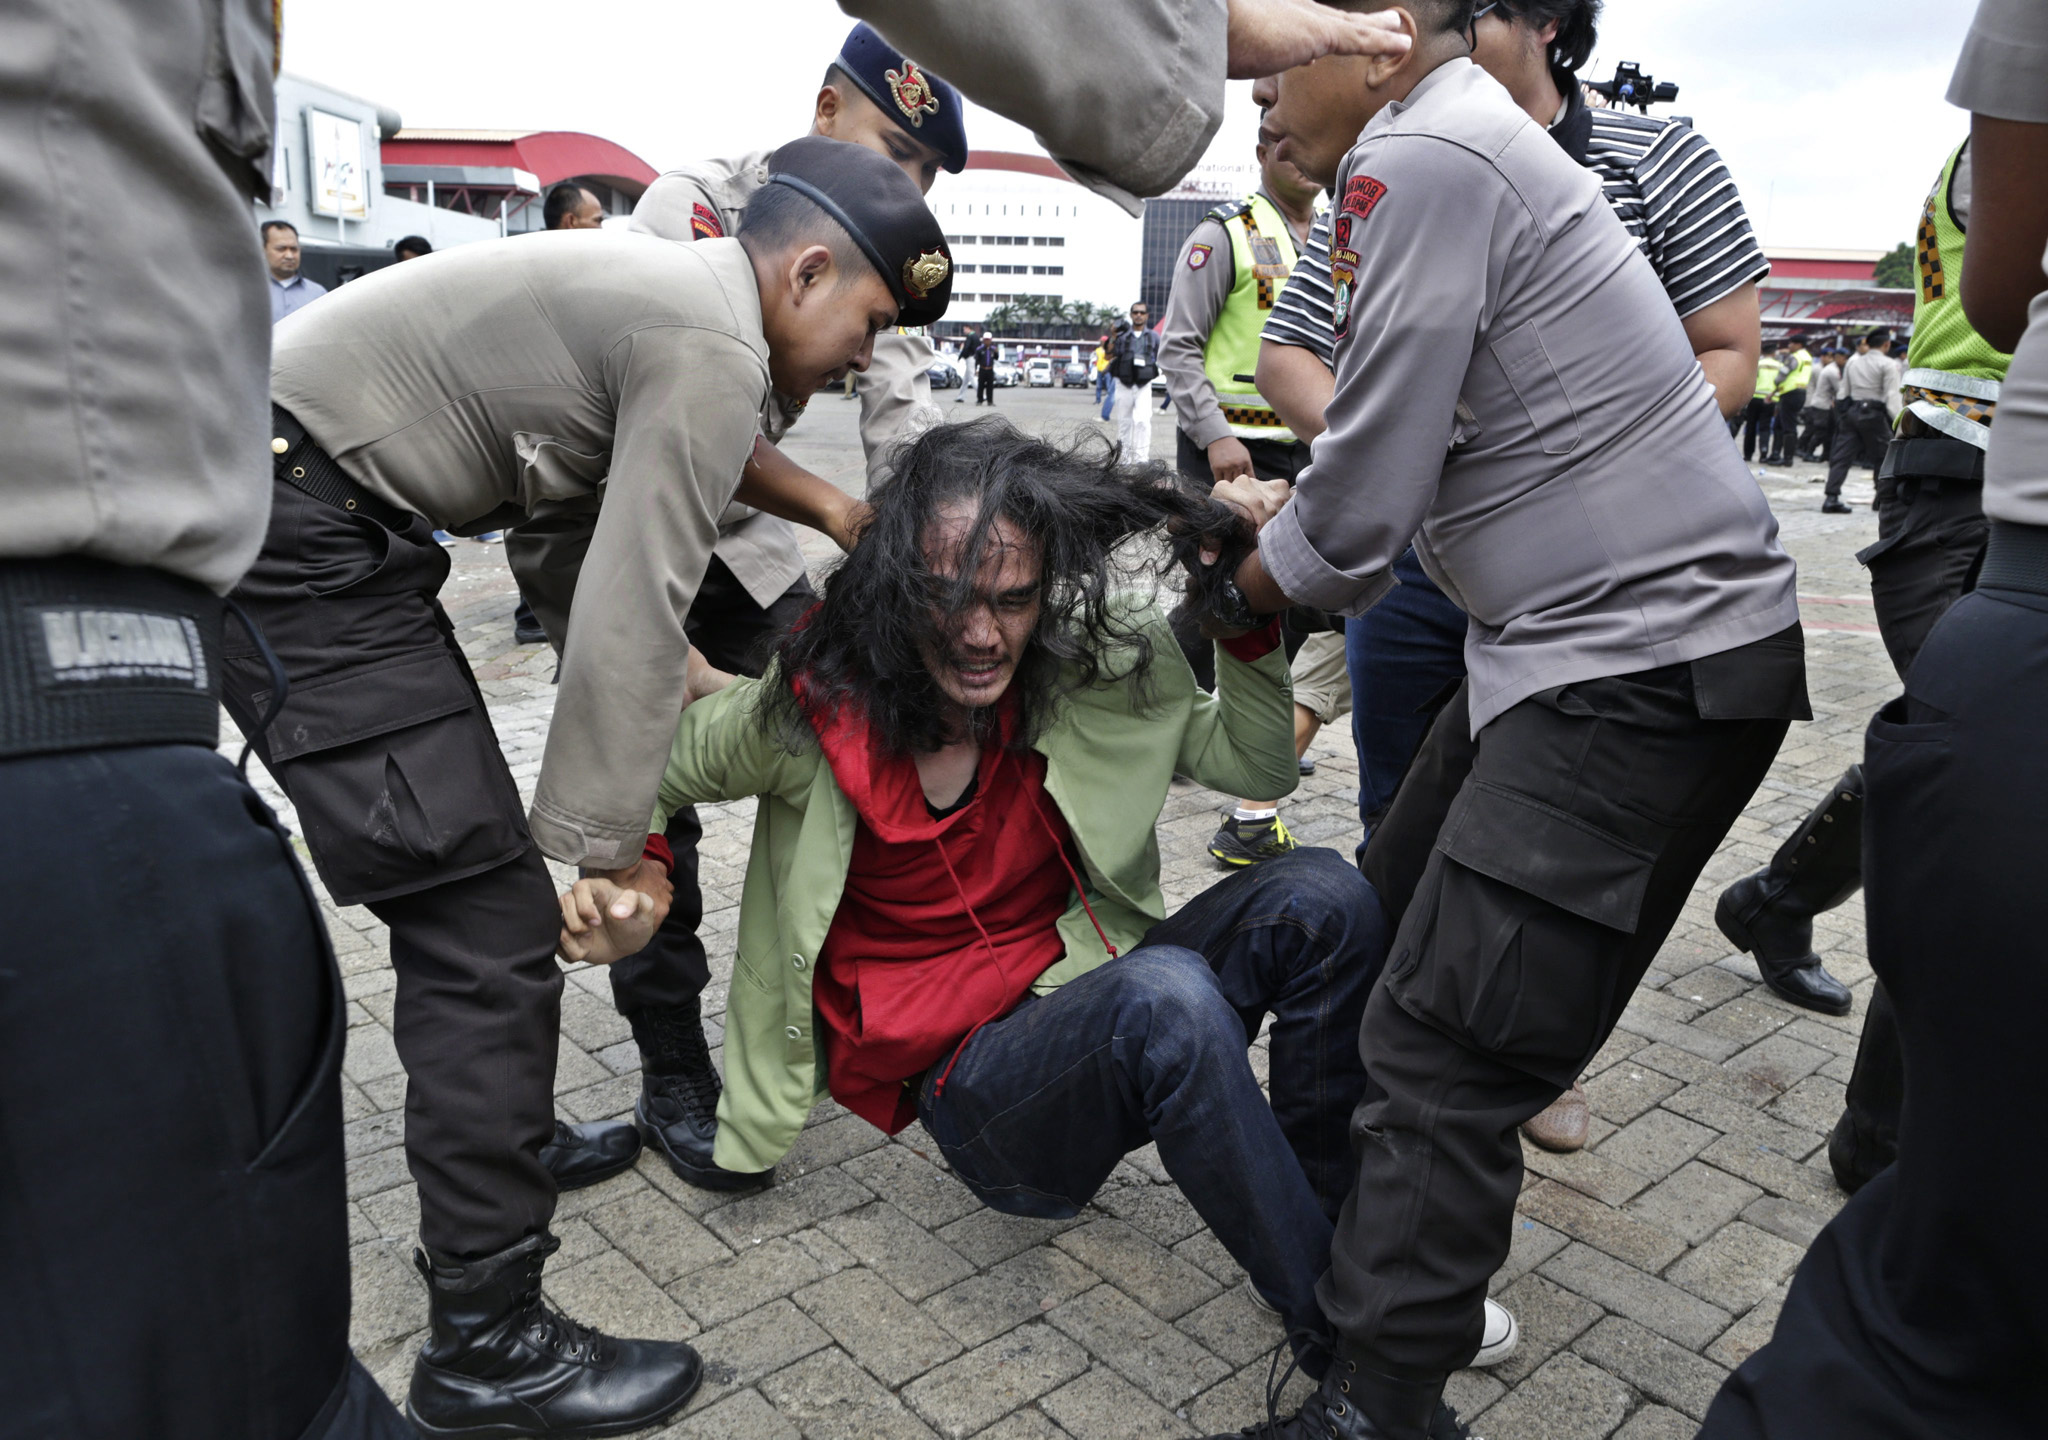 Protest against a tobacco exhibition in Jakarta...epa05279237 Indonesian students clash with police officers during an anti-tobacco protest outside the venue of the World Tobacco Process and Machinery Exhibition Asia 2016 in Jakarta, Indonesia, 27 April 2016. At least a hundred students staged a rally demanding the government to stop the exhibition, saying that it promotes smoking among youth and children. Indonesia ranks third in the world for the number of smokers after China and India, according to the World Health Organization.  EPA/MAST IRHAM